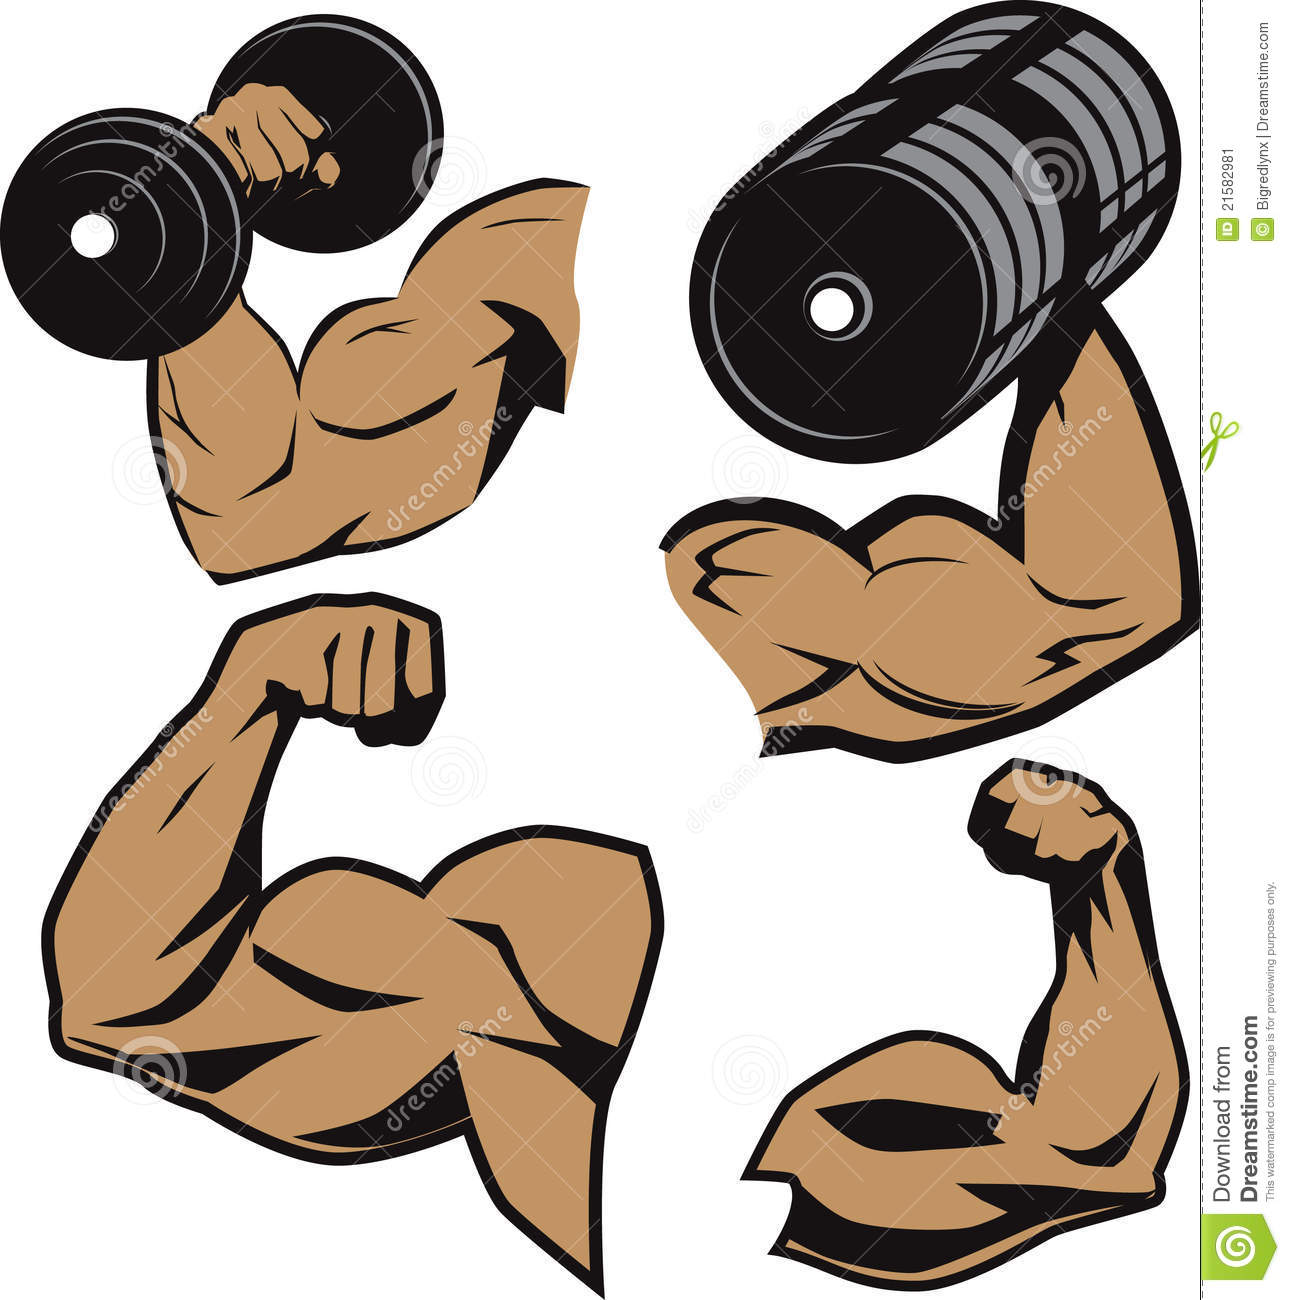 weightlifter arms stock vector illustration of curl 21582981 rh dreamstime com cartoon weightlifter clipart weightlifting clipart black and white